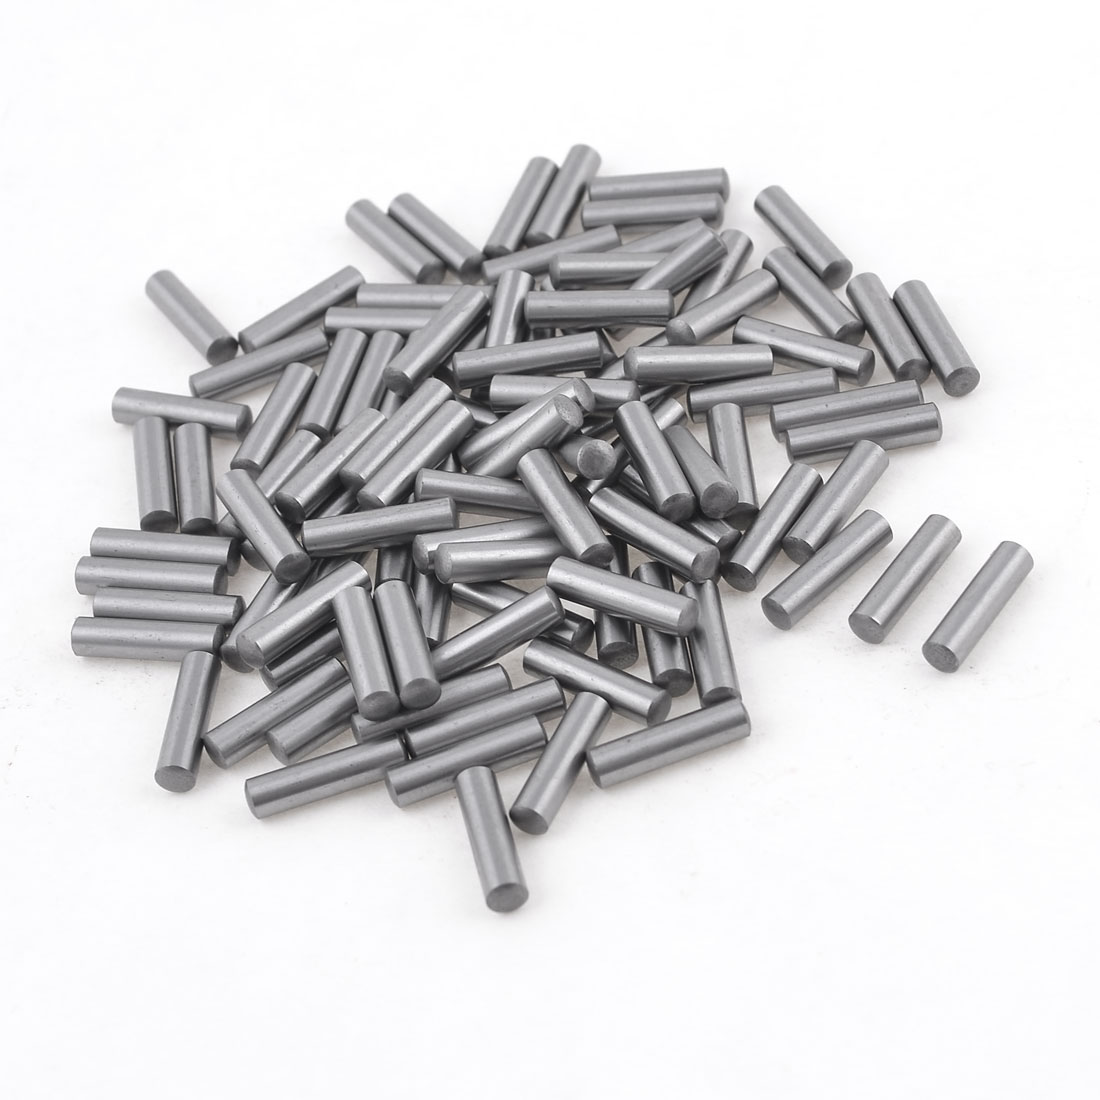 100 Pcs 3.5mm x 15.8mm Parallel Dowel Pins Fasten Elements